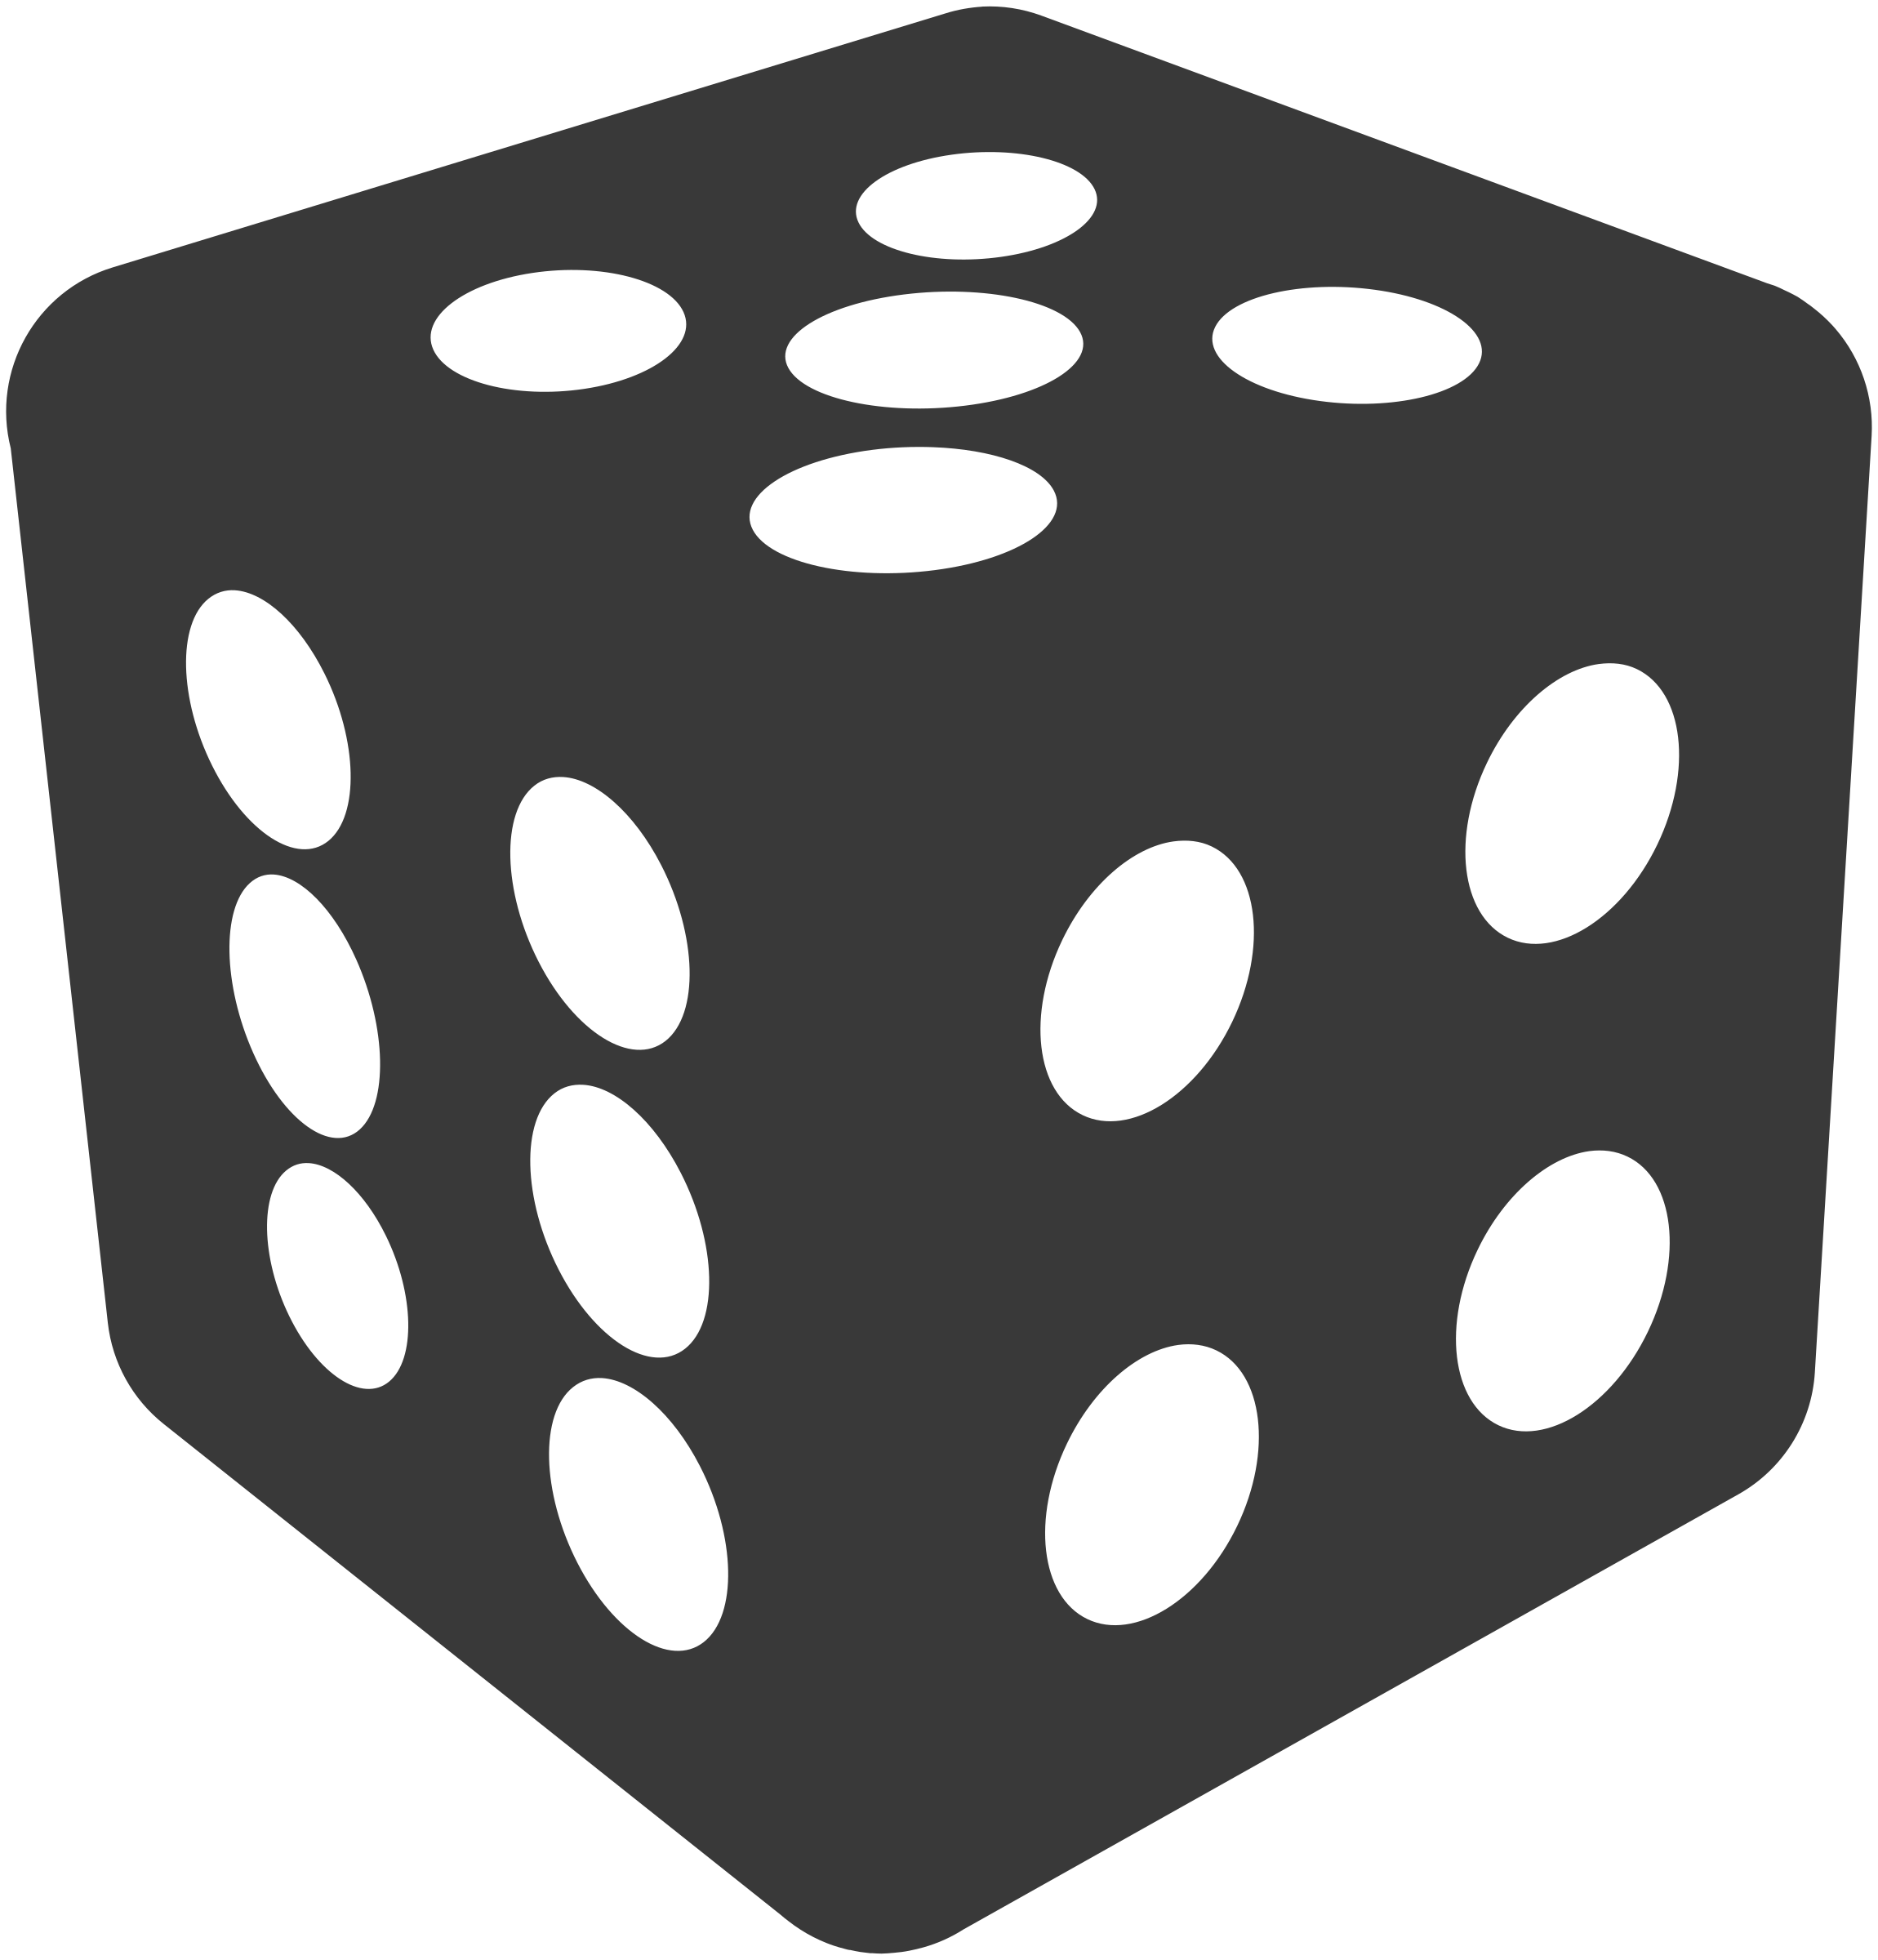 Dice png 5. Simple icons free and